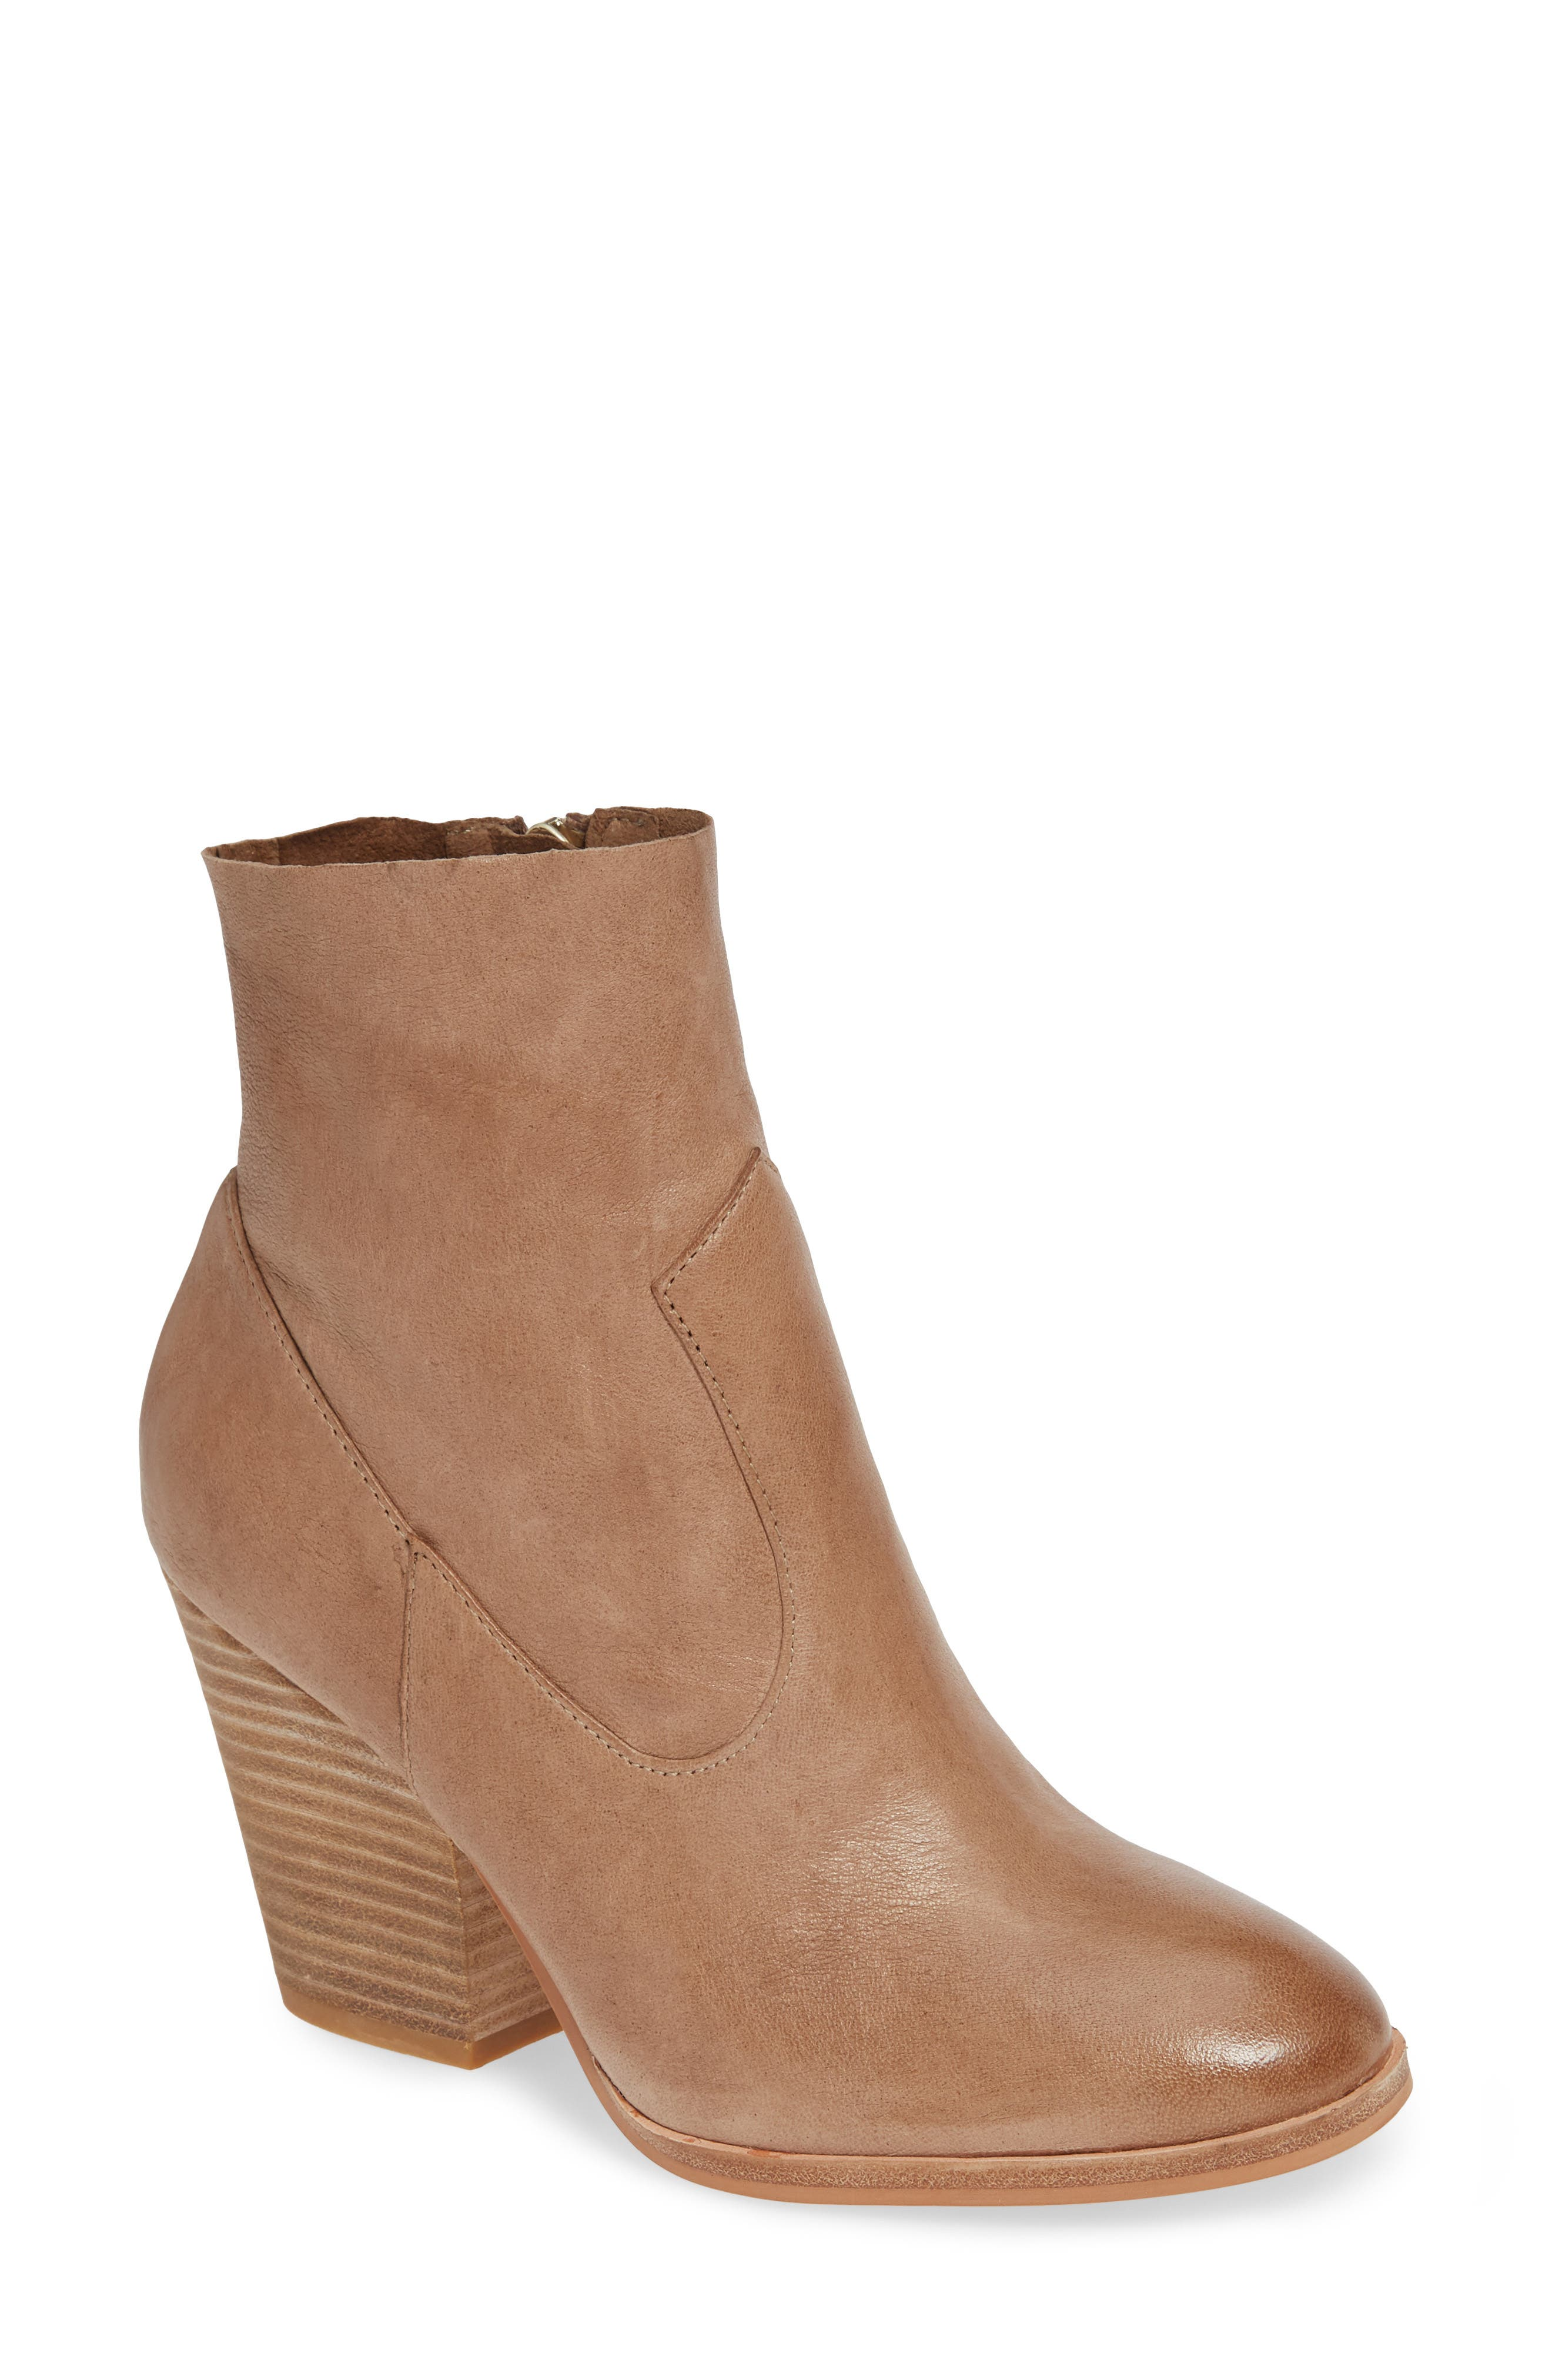 Isola Lani Block Heel Bootie, Main, color, LIGHT TAUPE LEATHER